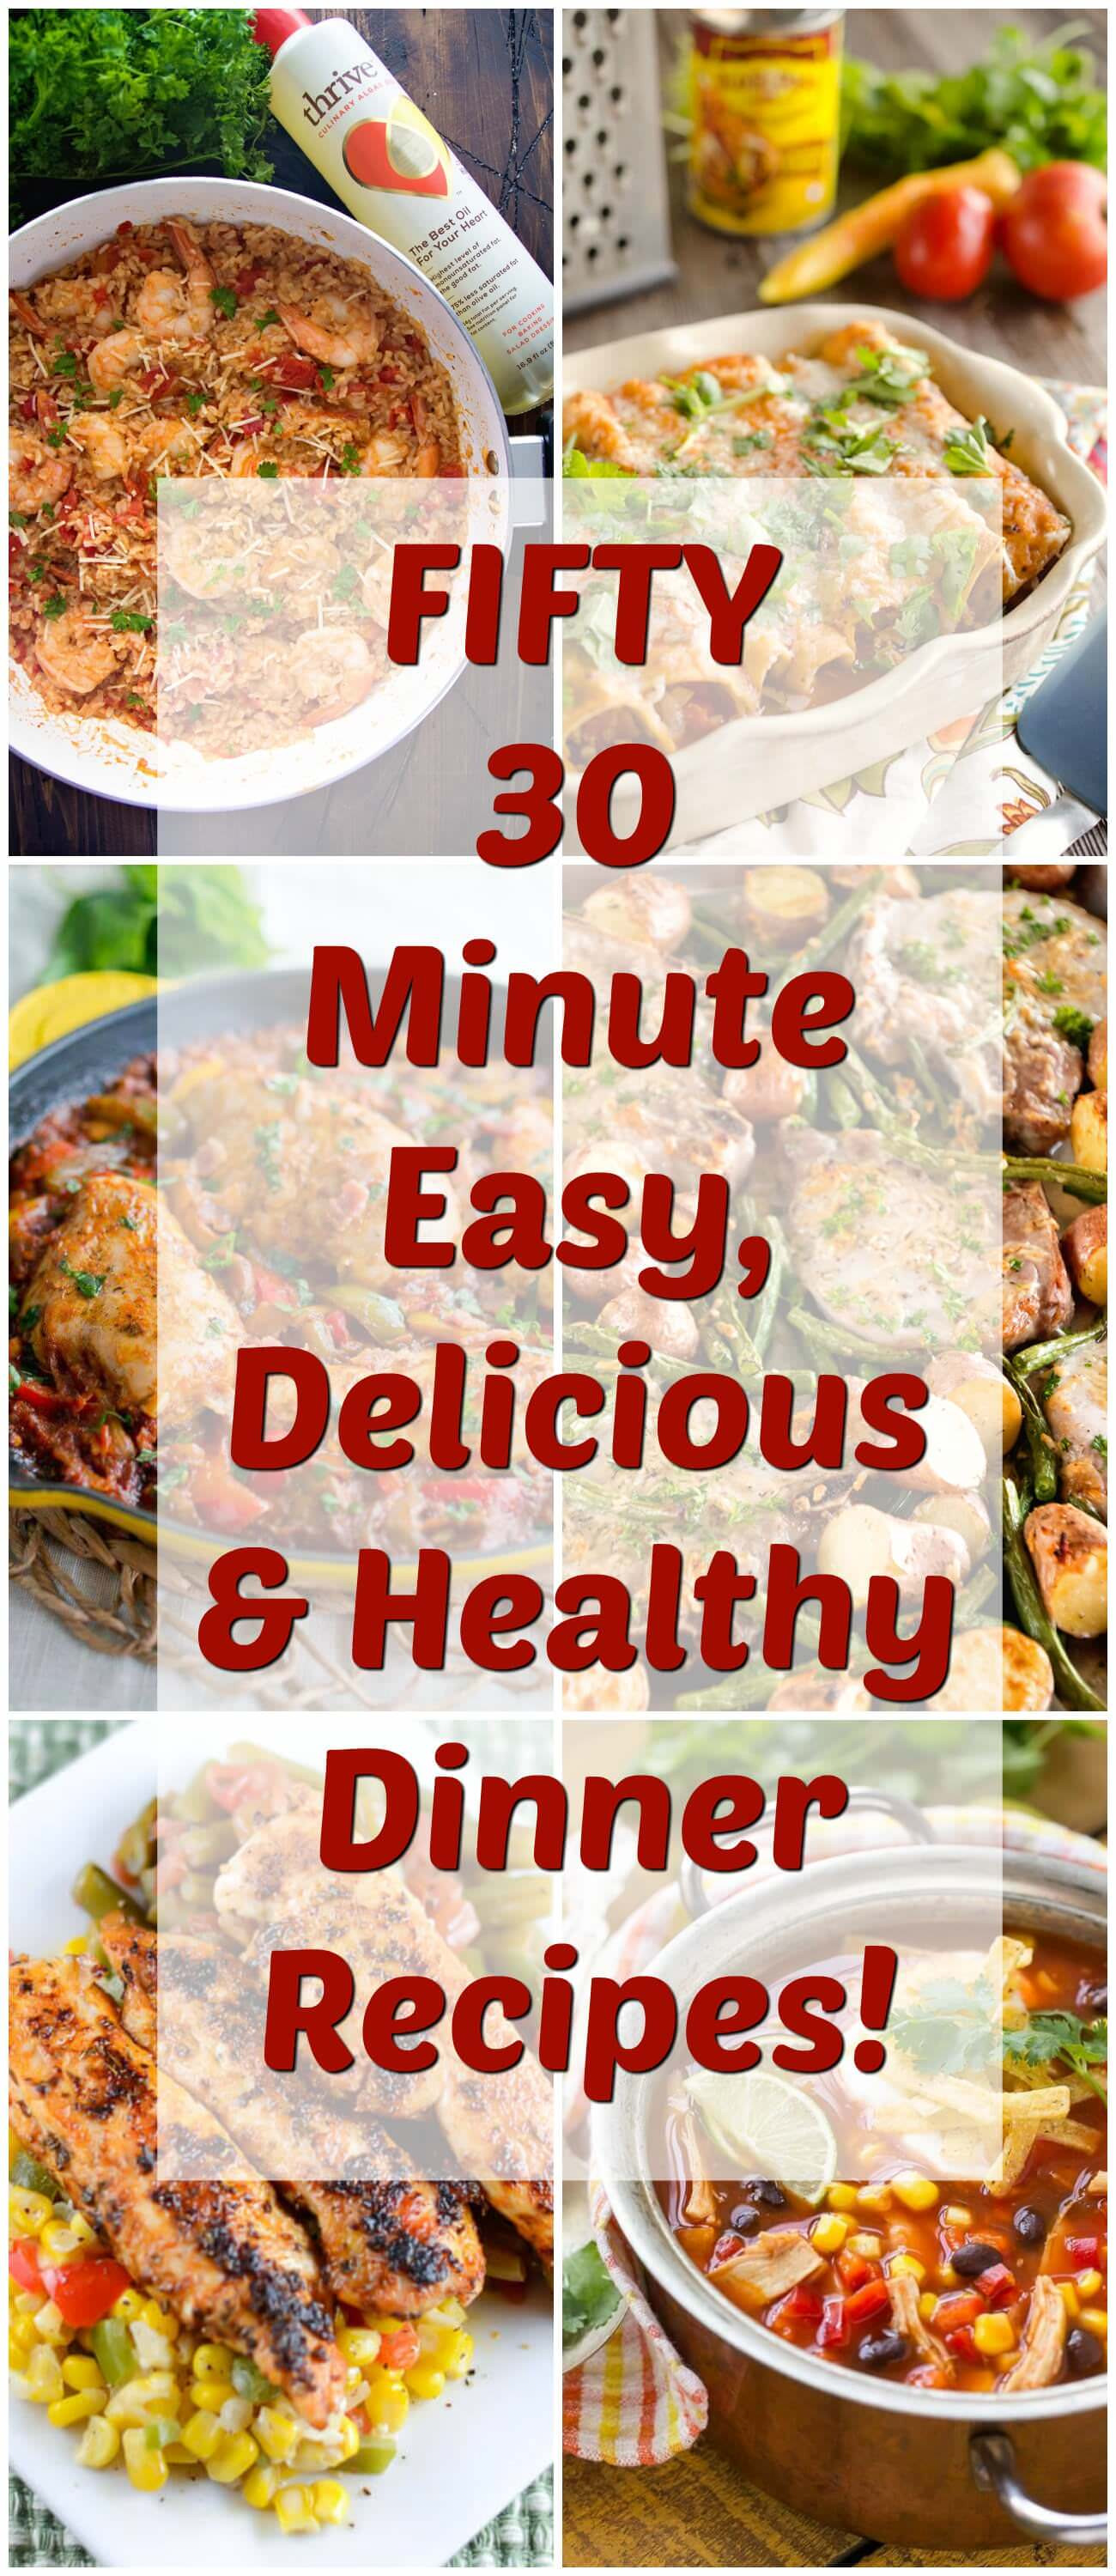 30 Minute Meals Healthy  FIFTY 30 Minute Easy Delicious & Healthy Dinner Recipes